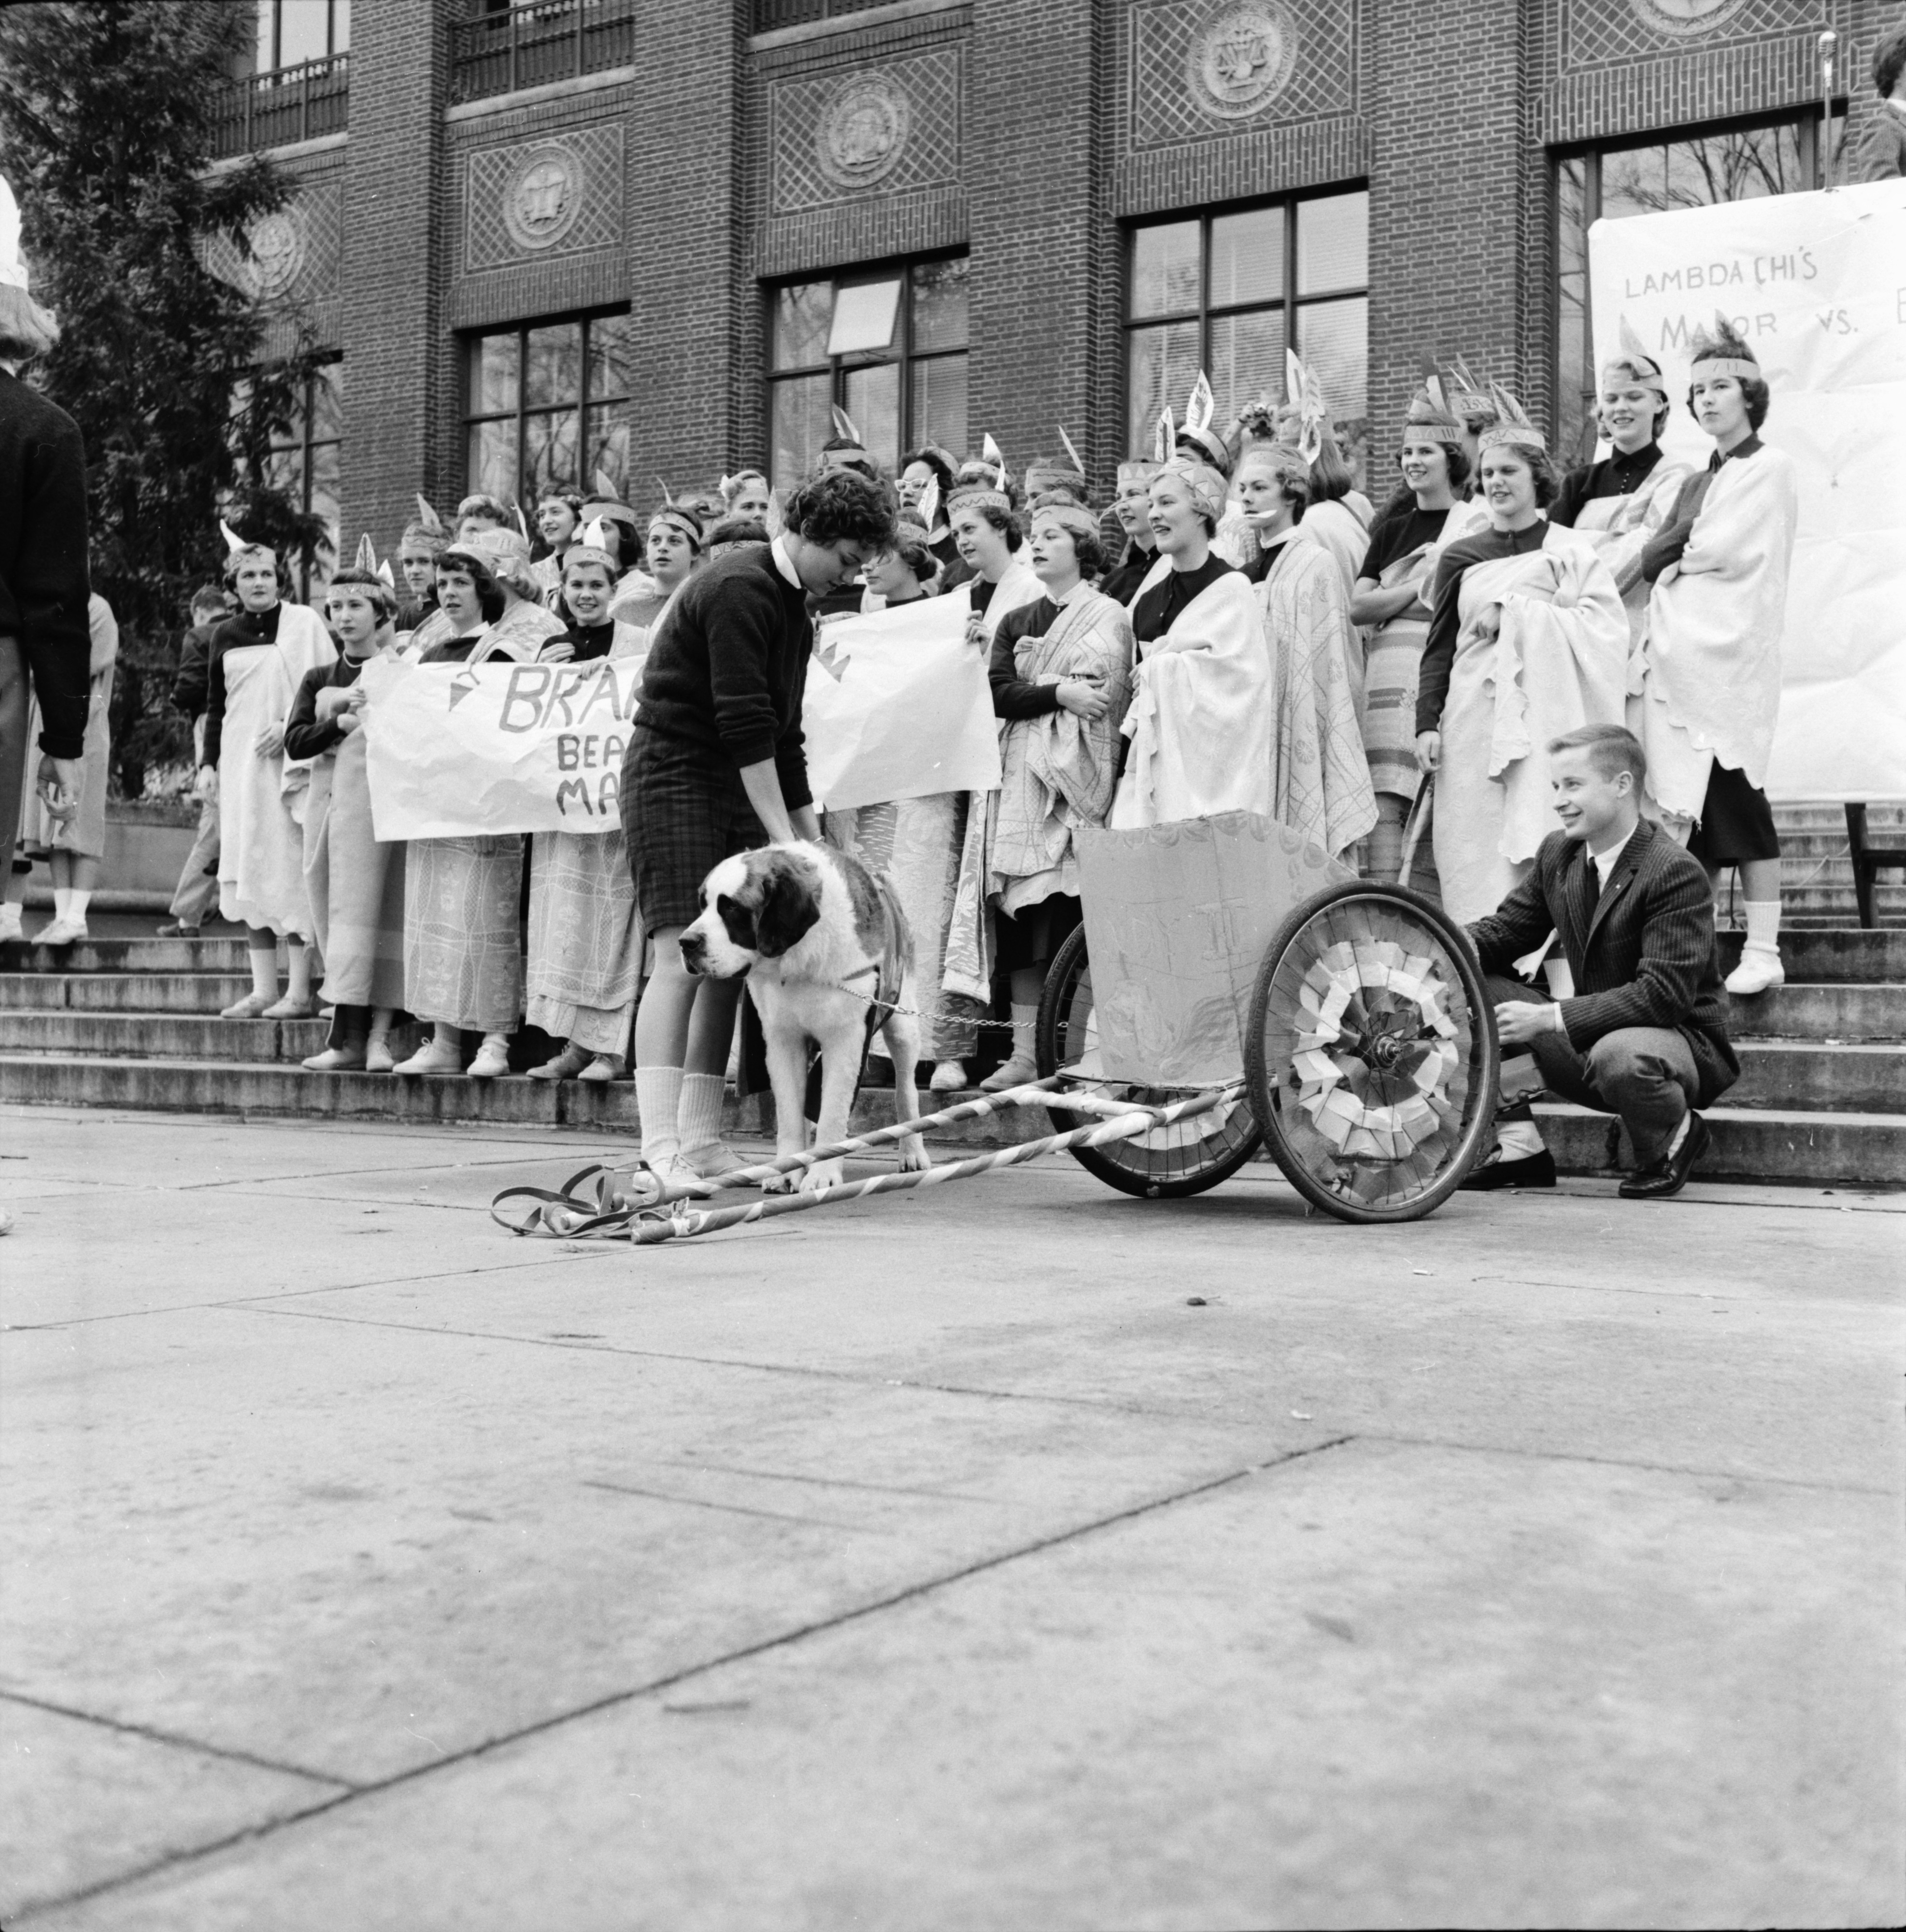 Brandy II, of Delta Upsilon Fraternity, runs in chariot race on the U-M Diag, October 1958 image